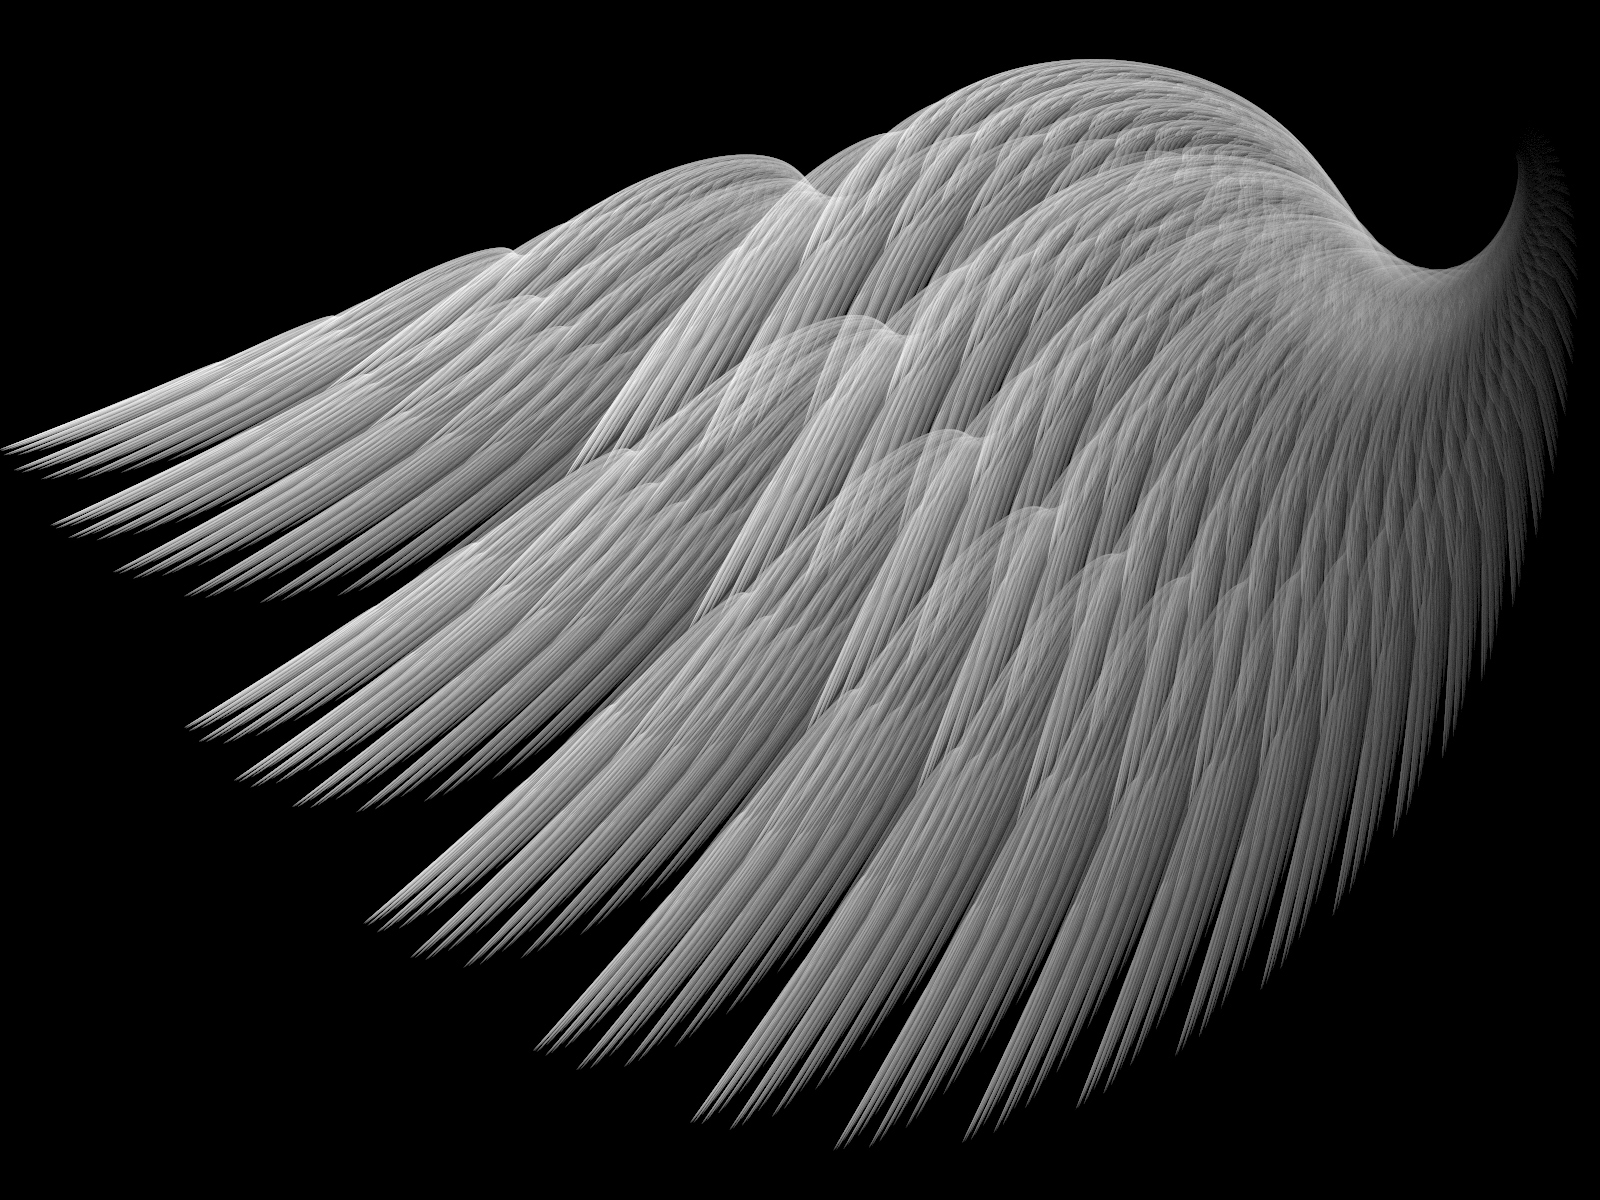 A Swans Wing by Thelma1